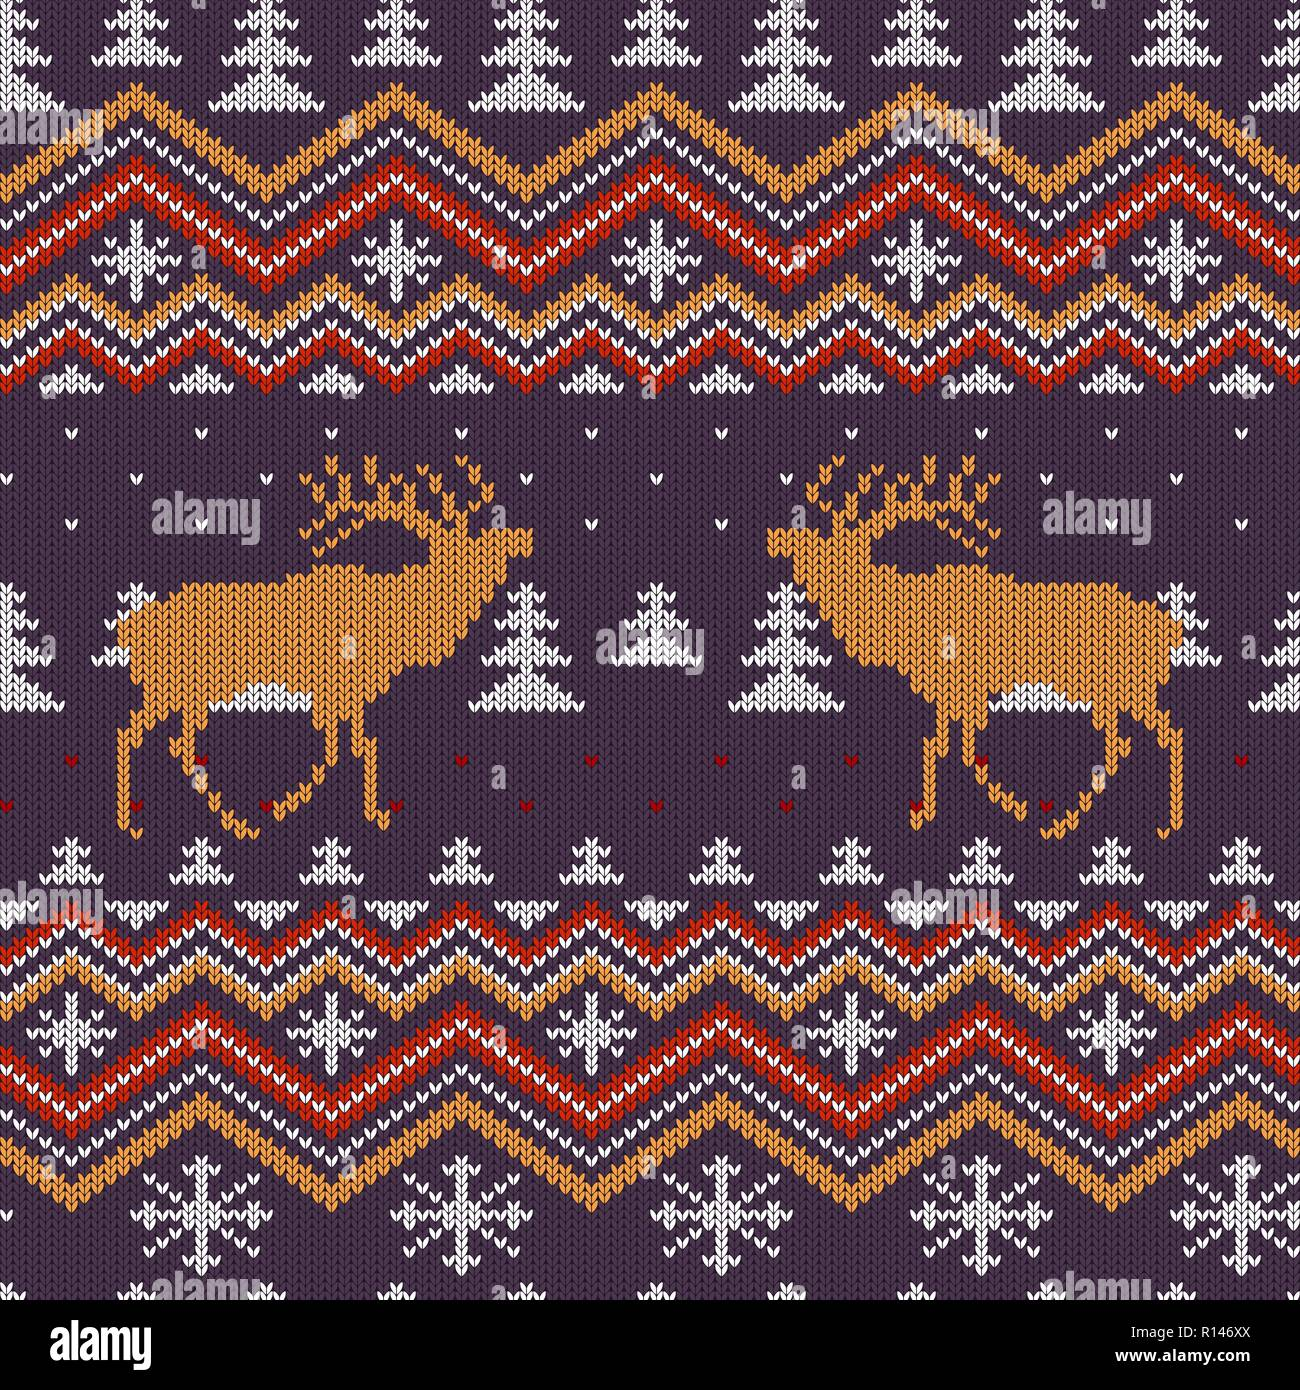 Christmas winter knitted woolen seamless pattern with red deer in snow-covered spruce forest - Stock Vector